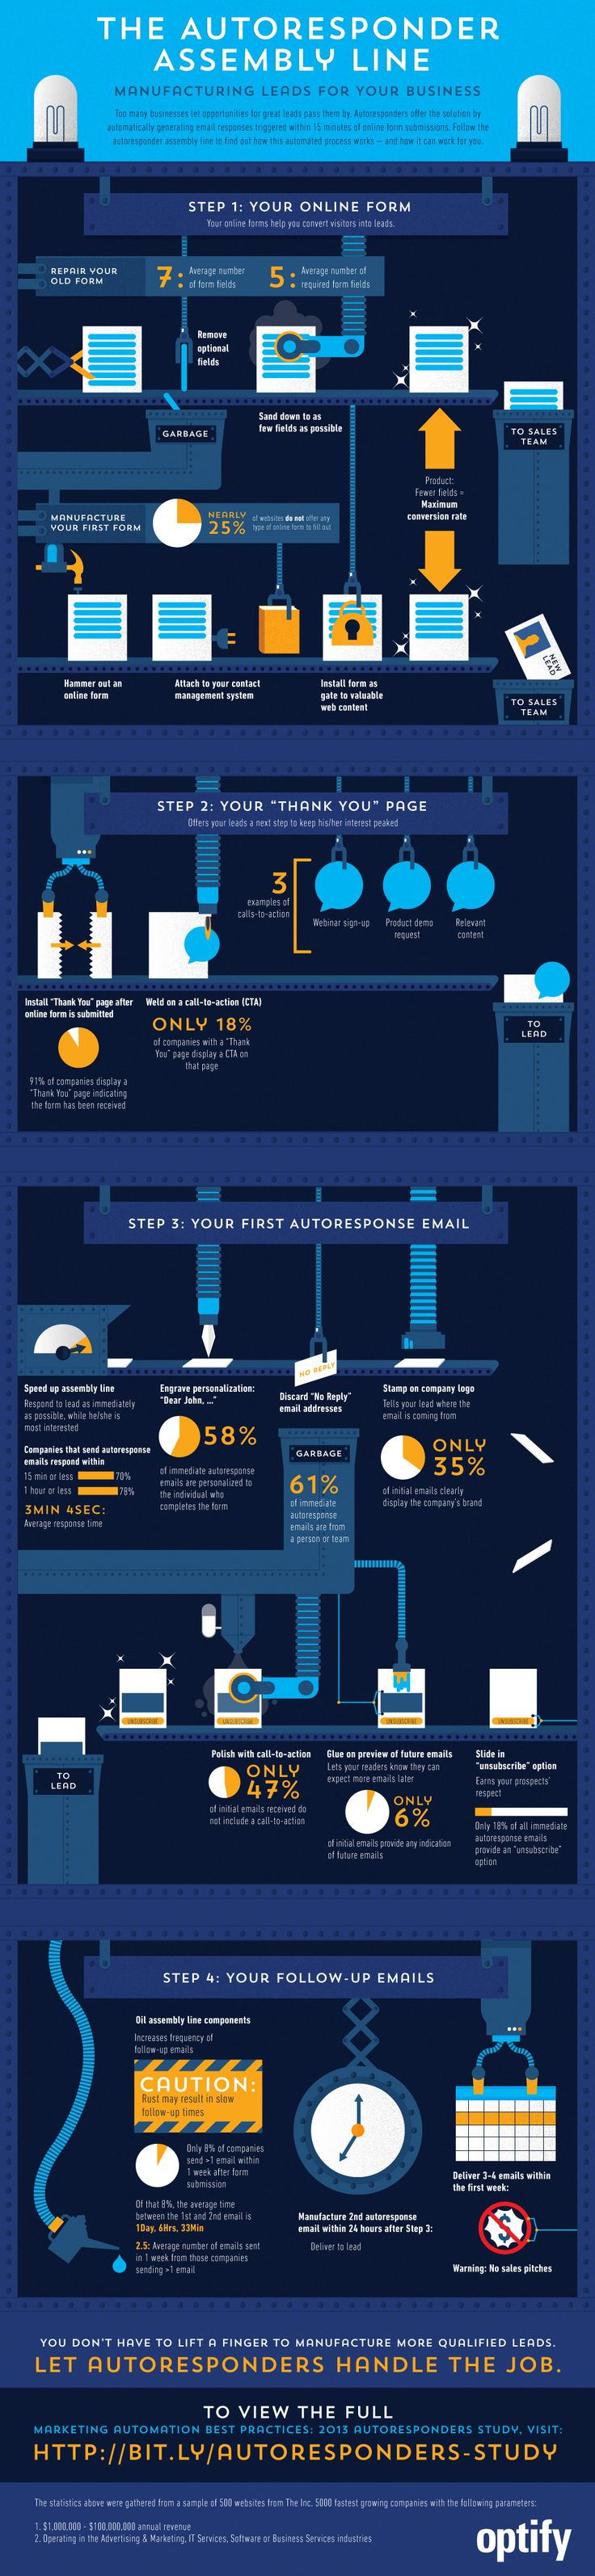 Infographic: Best Practices for Using Autoresponders in Email Marketing for Lead Generation and Nurturing